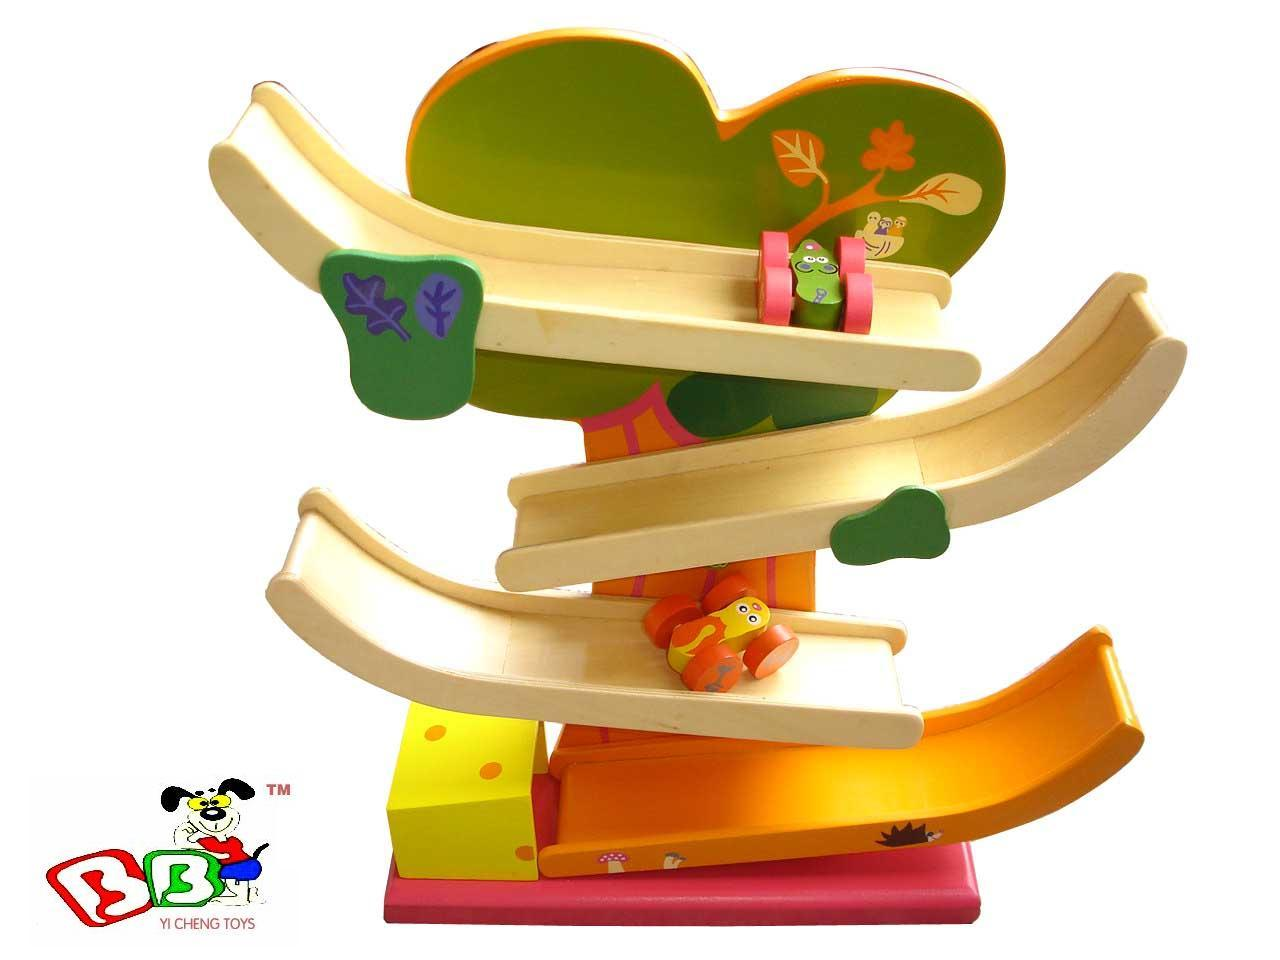 Wooden Toys Product : China wooden intellectual toys yc